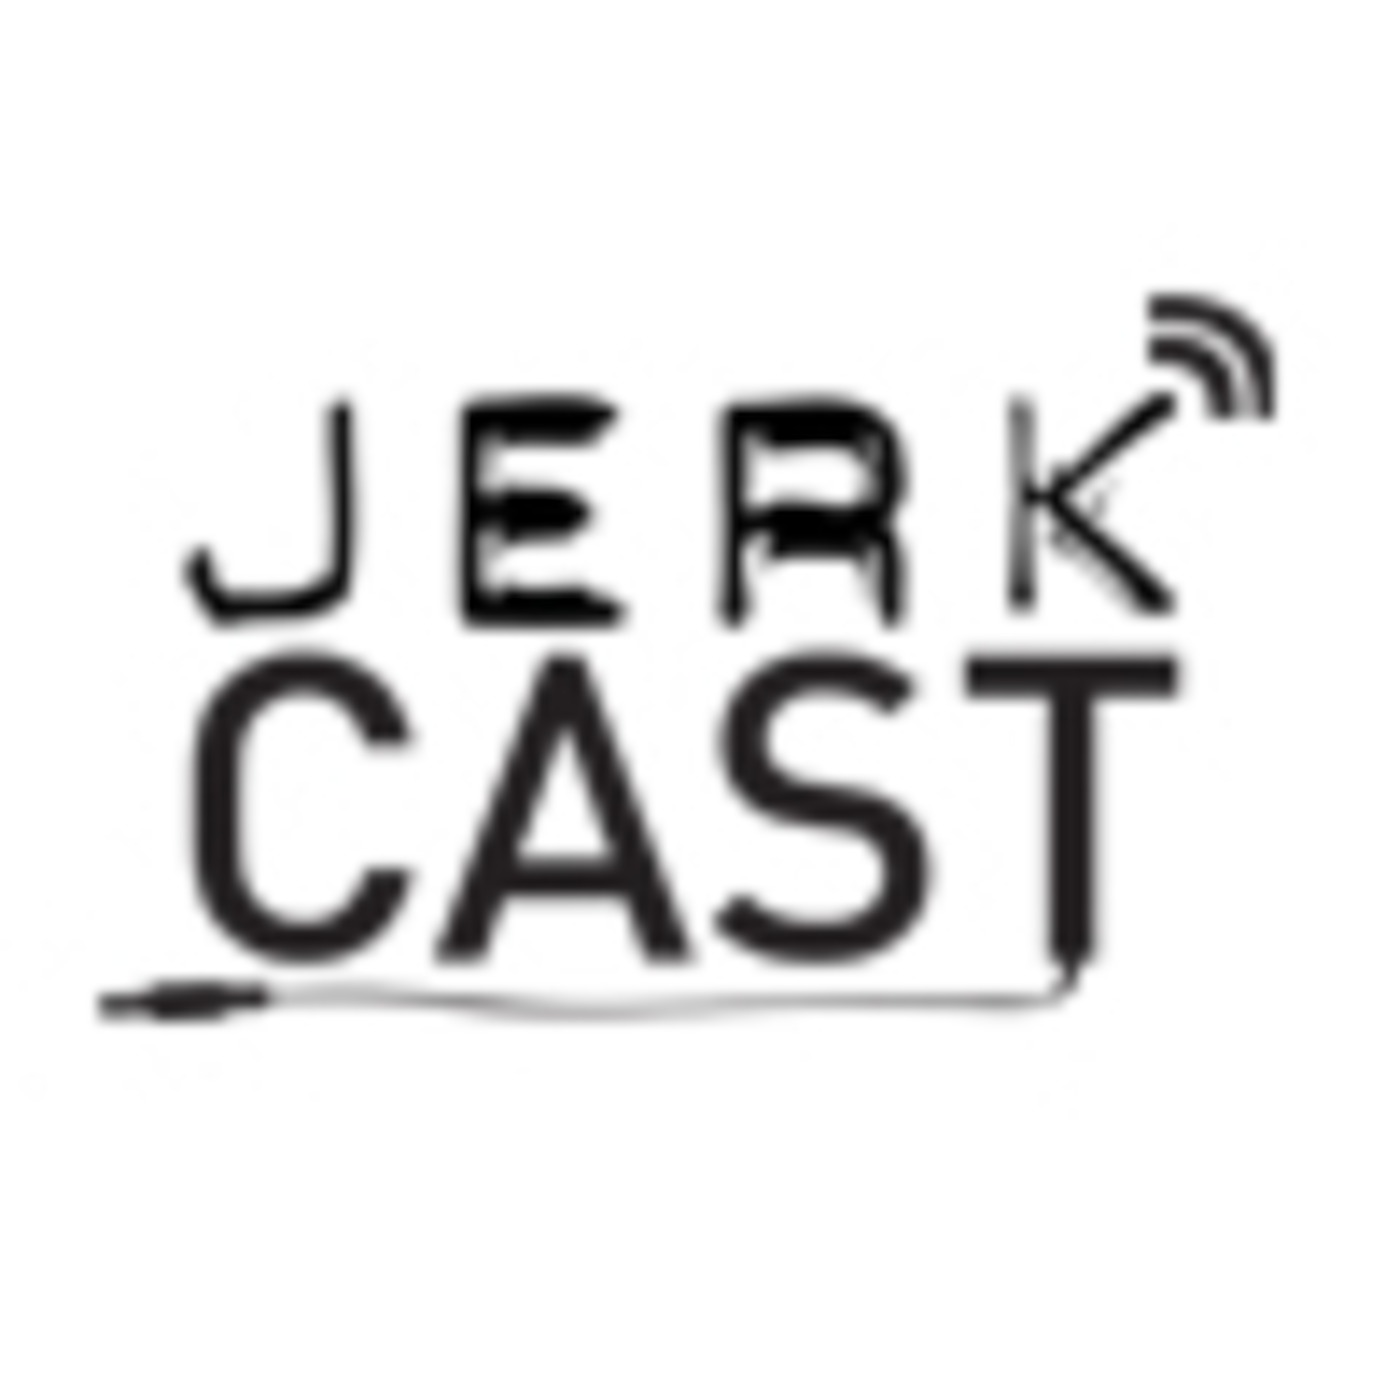 JERKcast Seasons 3+